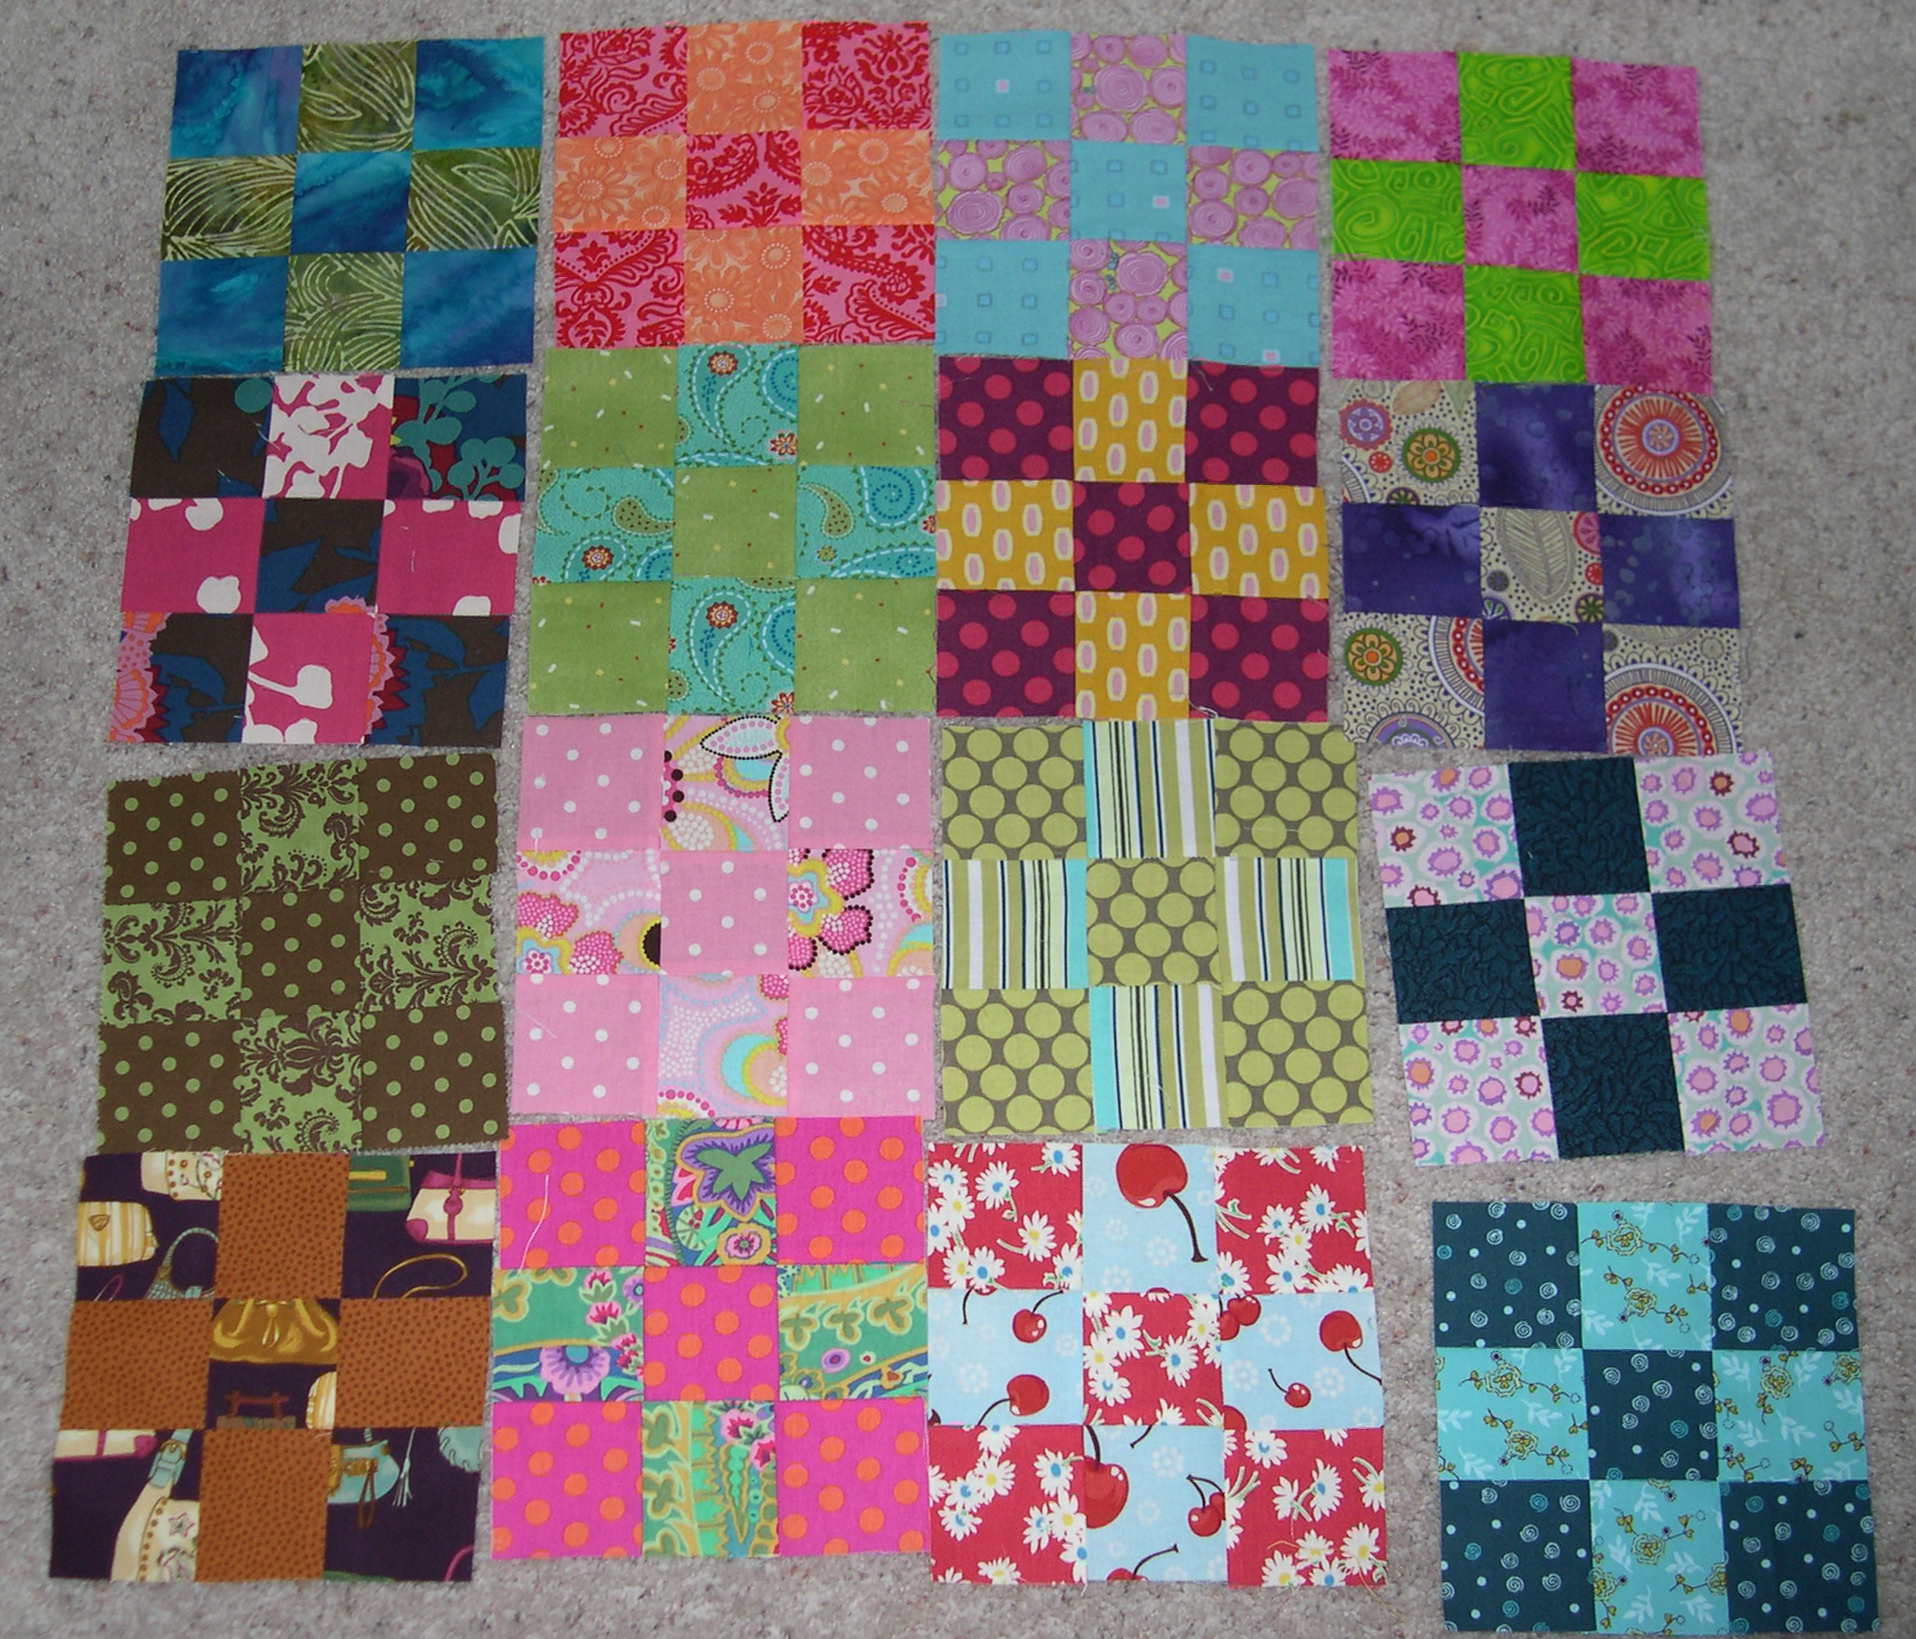 9-patch swap month 1